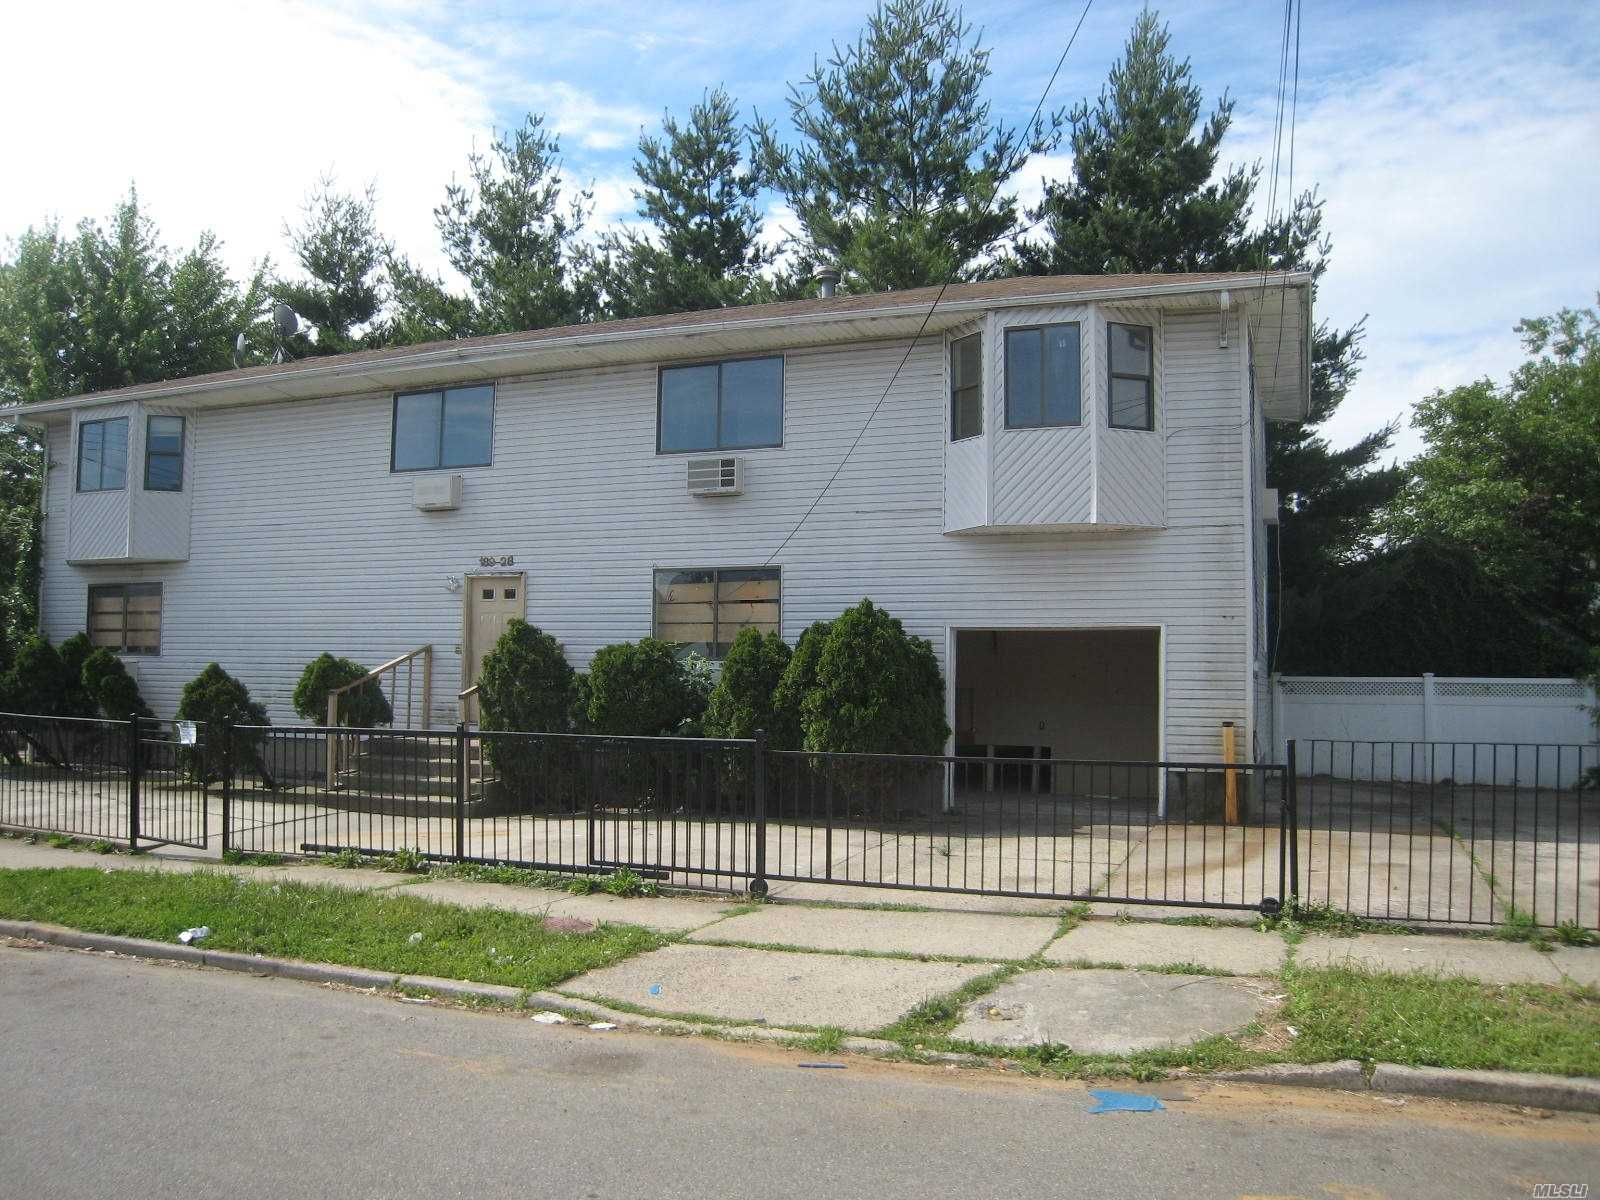 Extra Large 2520 Sq. Ft. One Family Home In St. Albans. Needs Complete Gut Renovation. Sold In As-Is Condition.